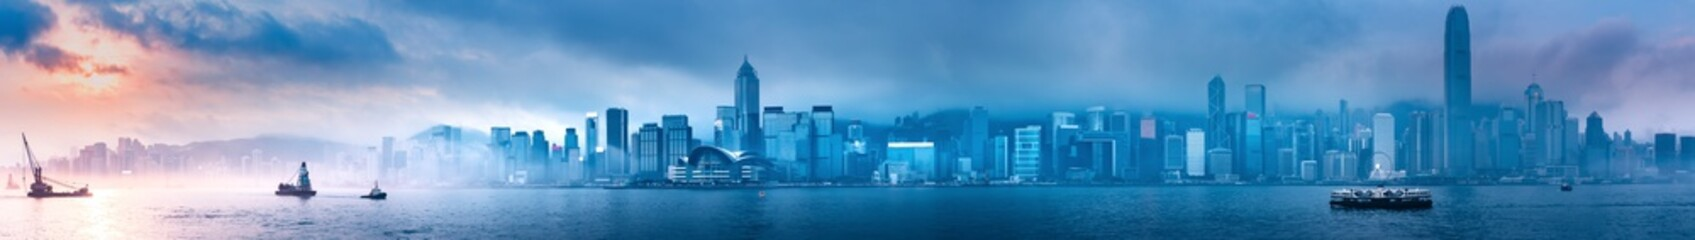 Hong Kong morning cityscape panorama from across Victoria Harbor Wall mural